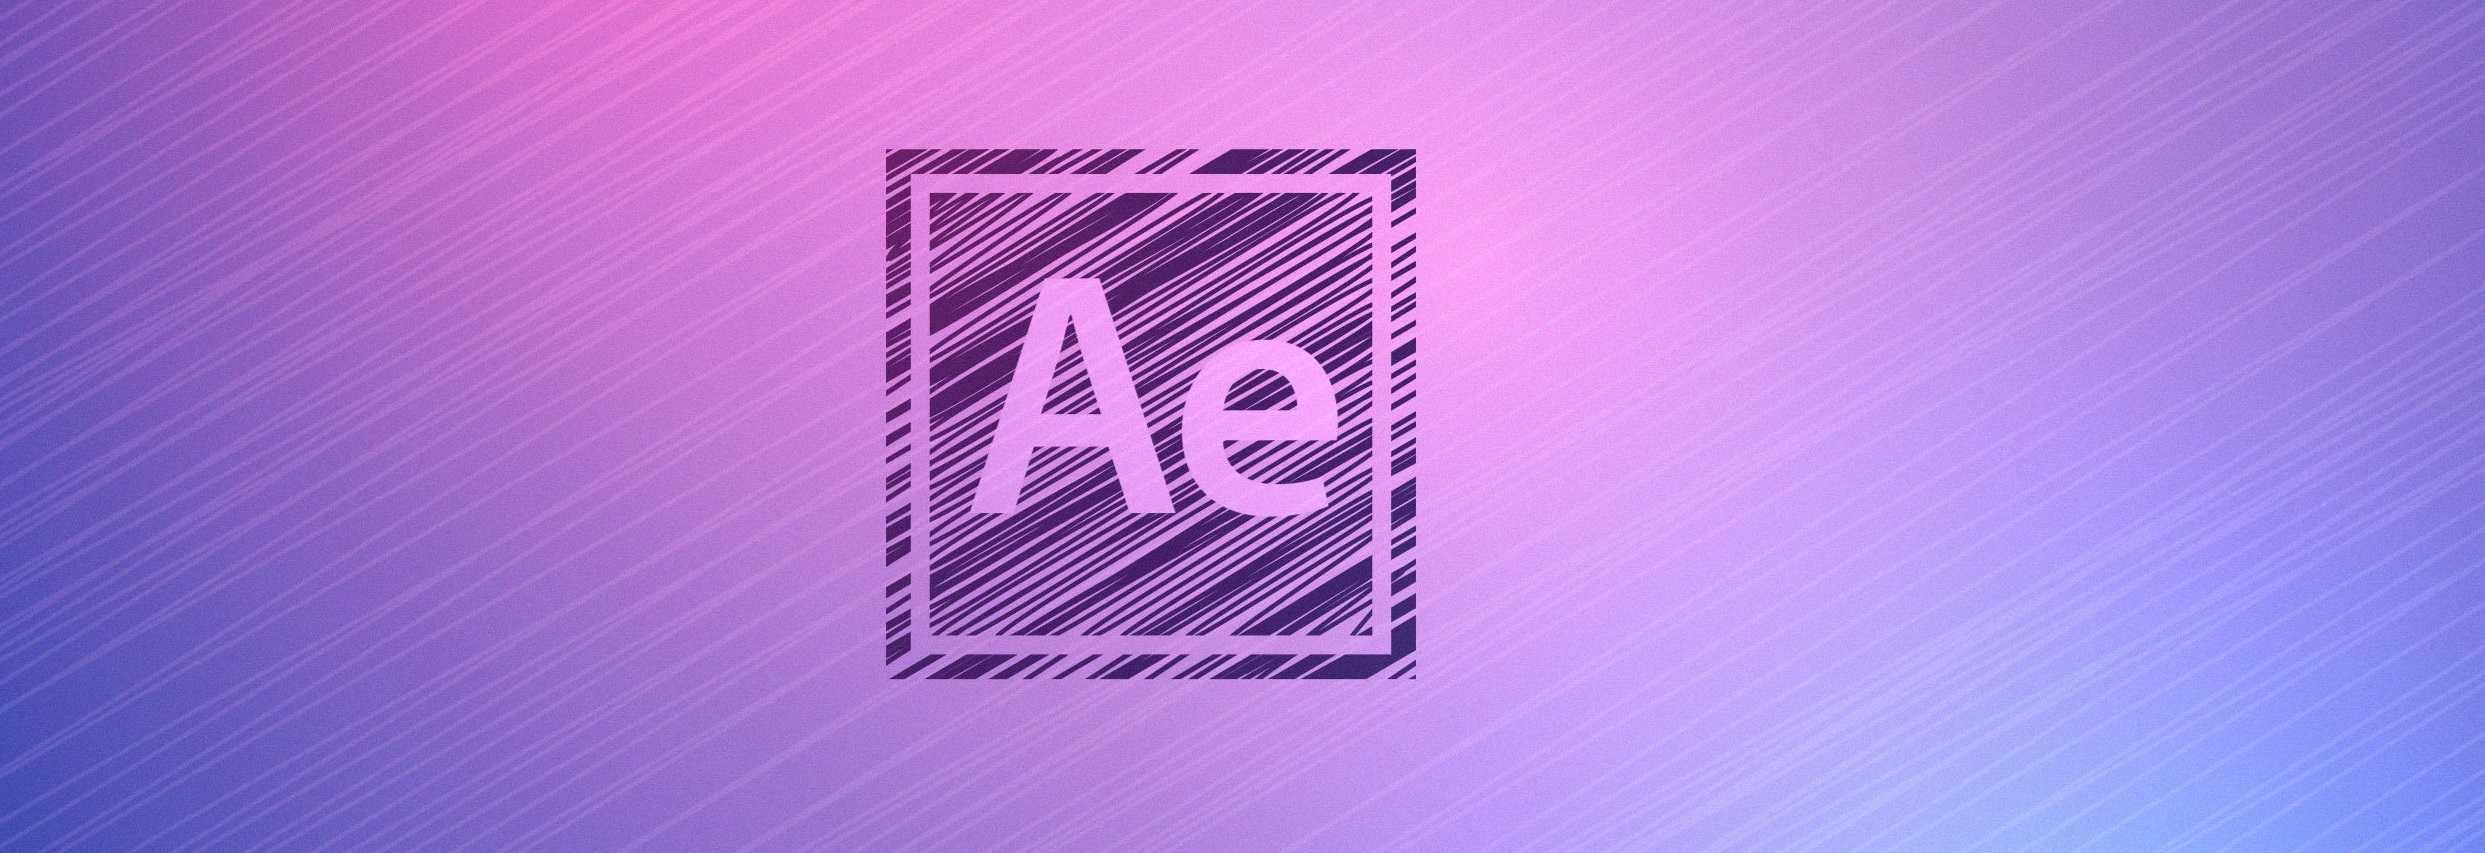 Sribble-Text-in-After-Effects-Tutorial